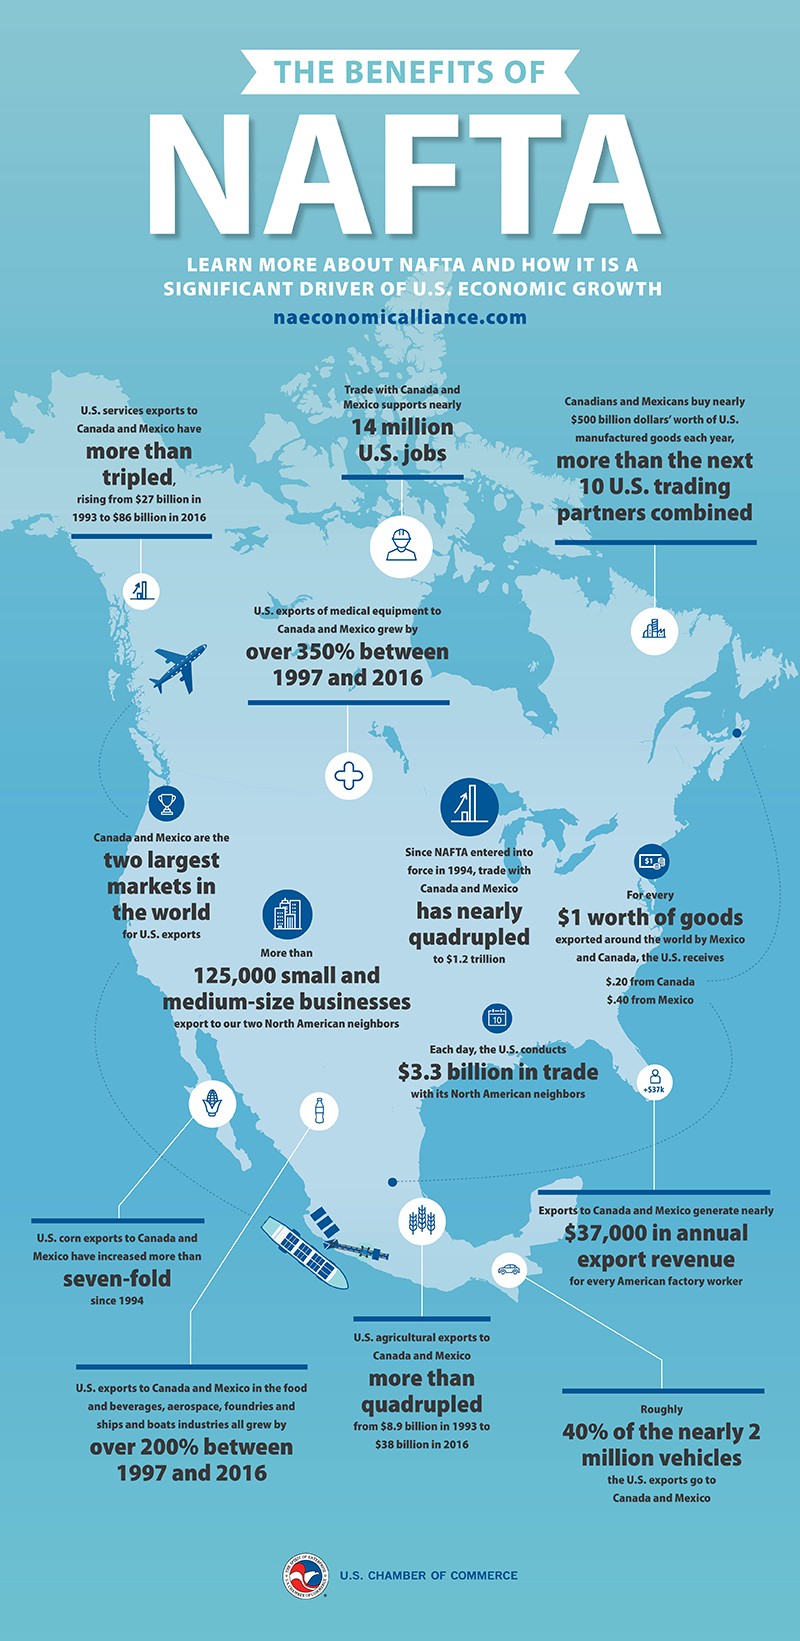 023281_INTL Benefits of NAFTA Infographic.jpg